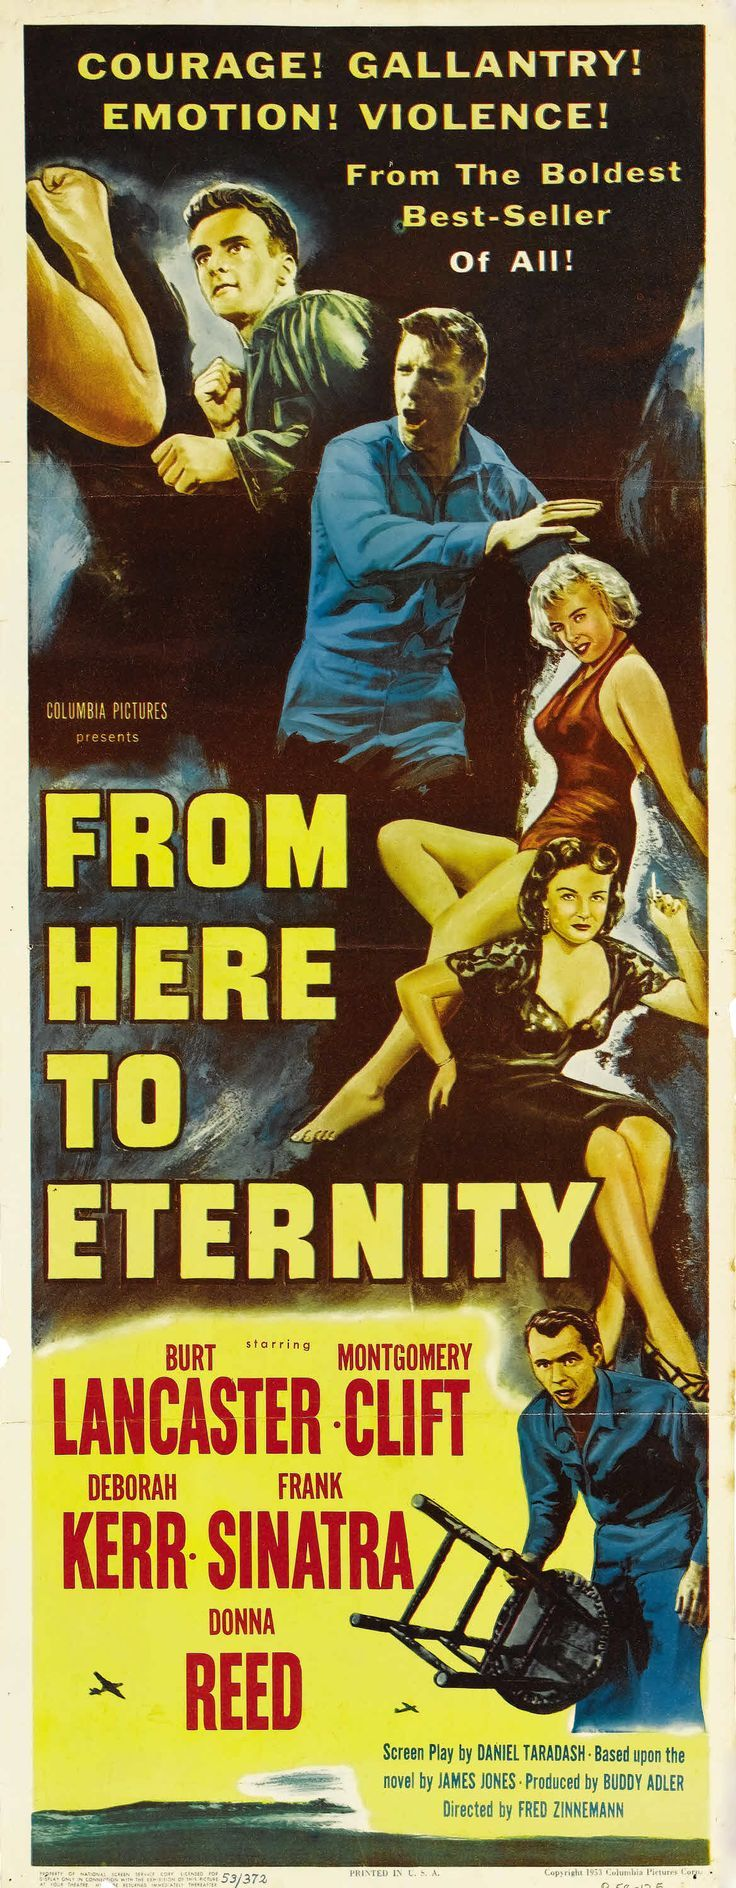 Best Film Posters From Here To Eternity De Aquí A La Eternidad 1953 Director Fred Zinnemann Dear Art Leading Art Culture Magazine Database Old Movie